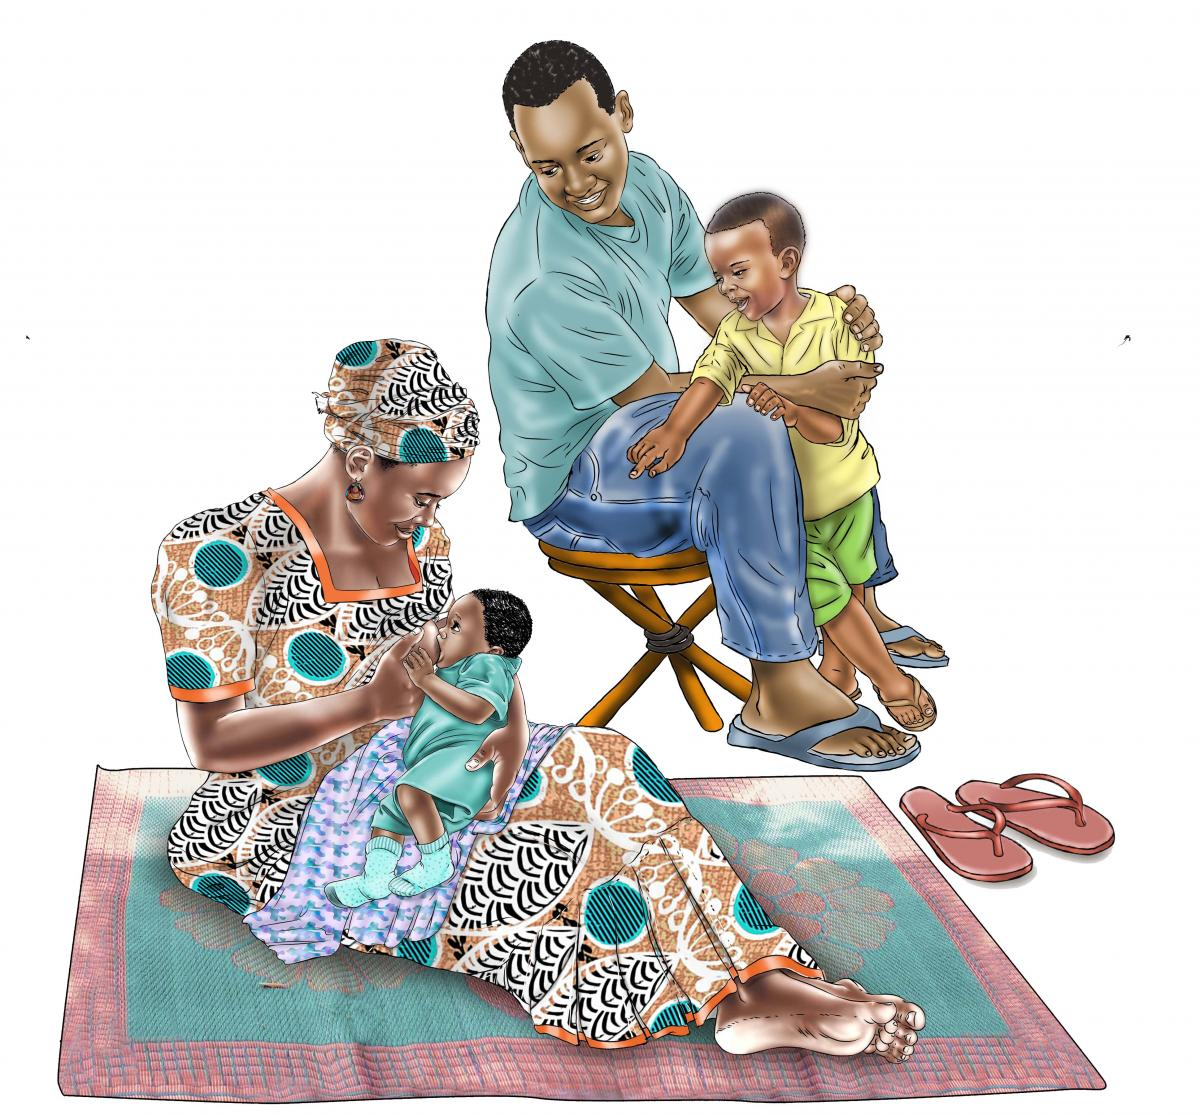 Family - Family Support for Breastfeeding 0-6 mo - 03 - Senegal